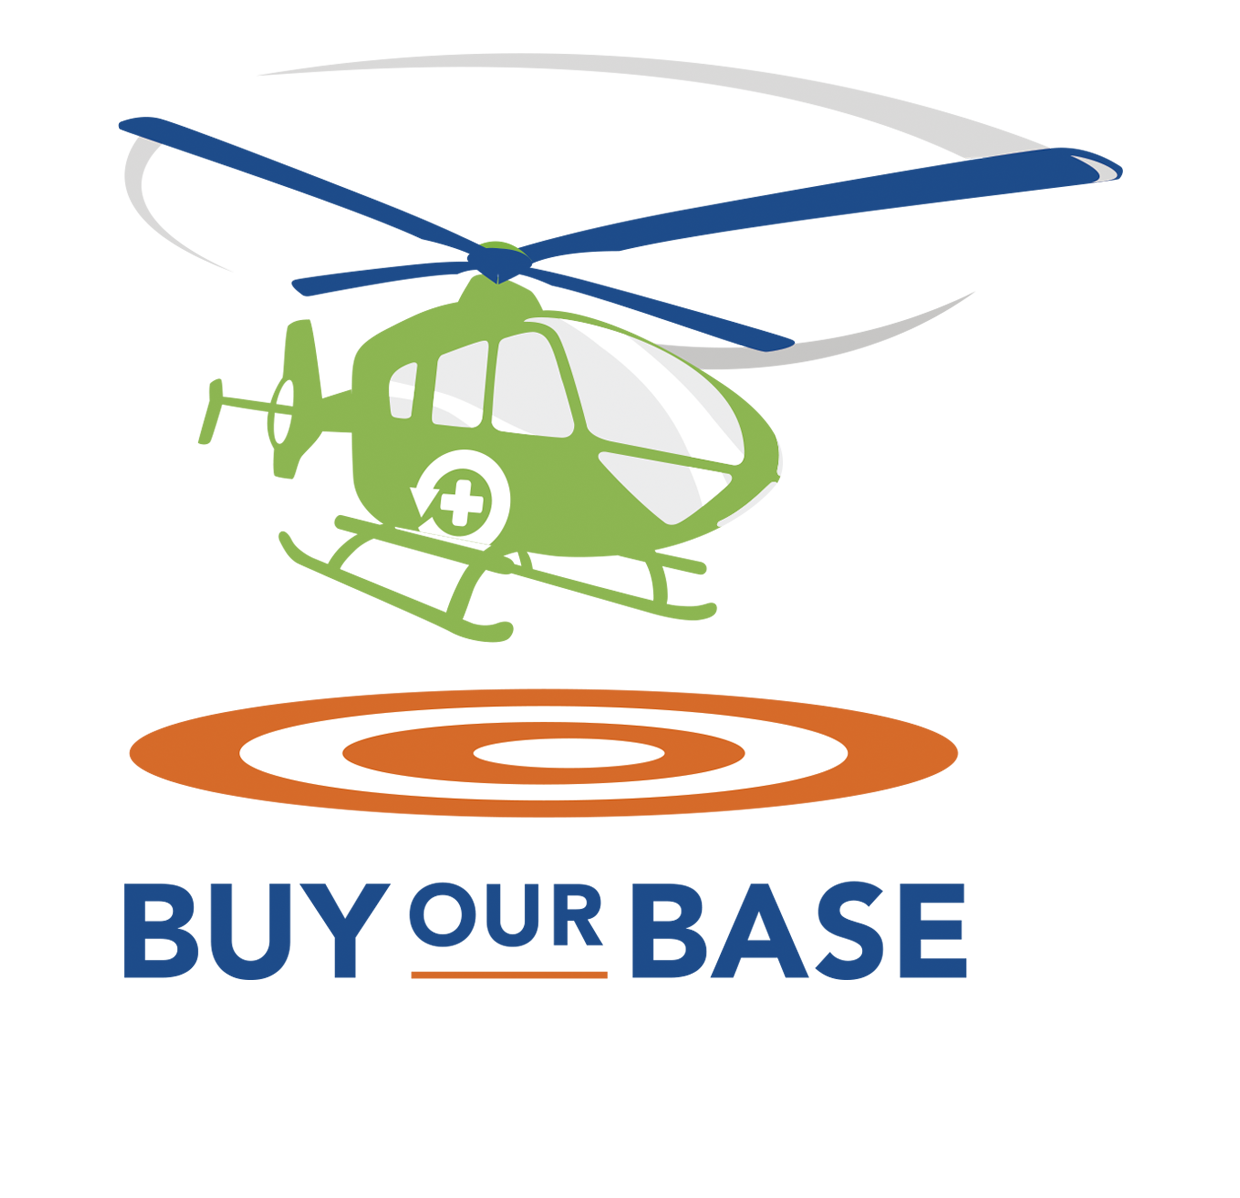 Buy Our Base